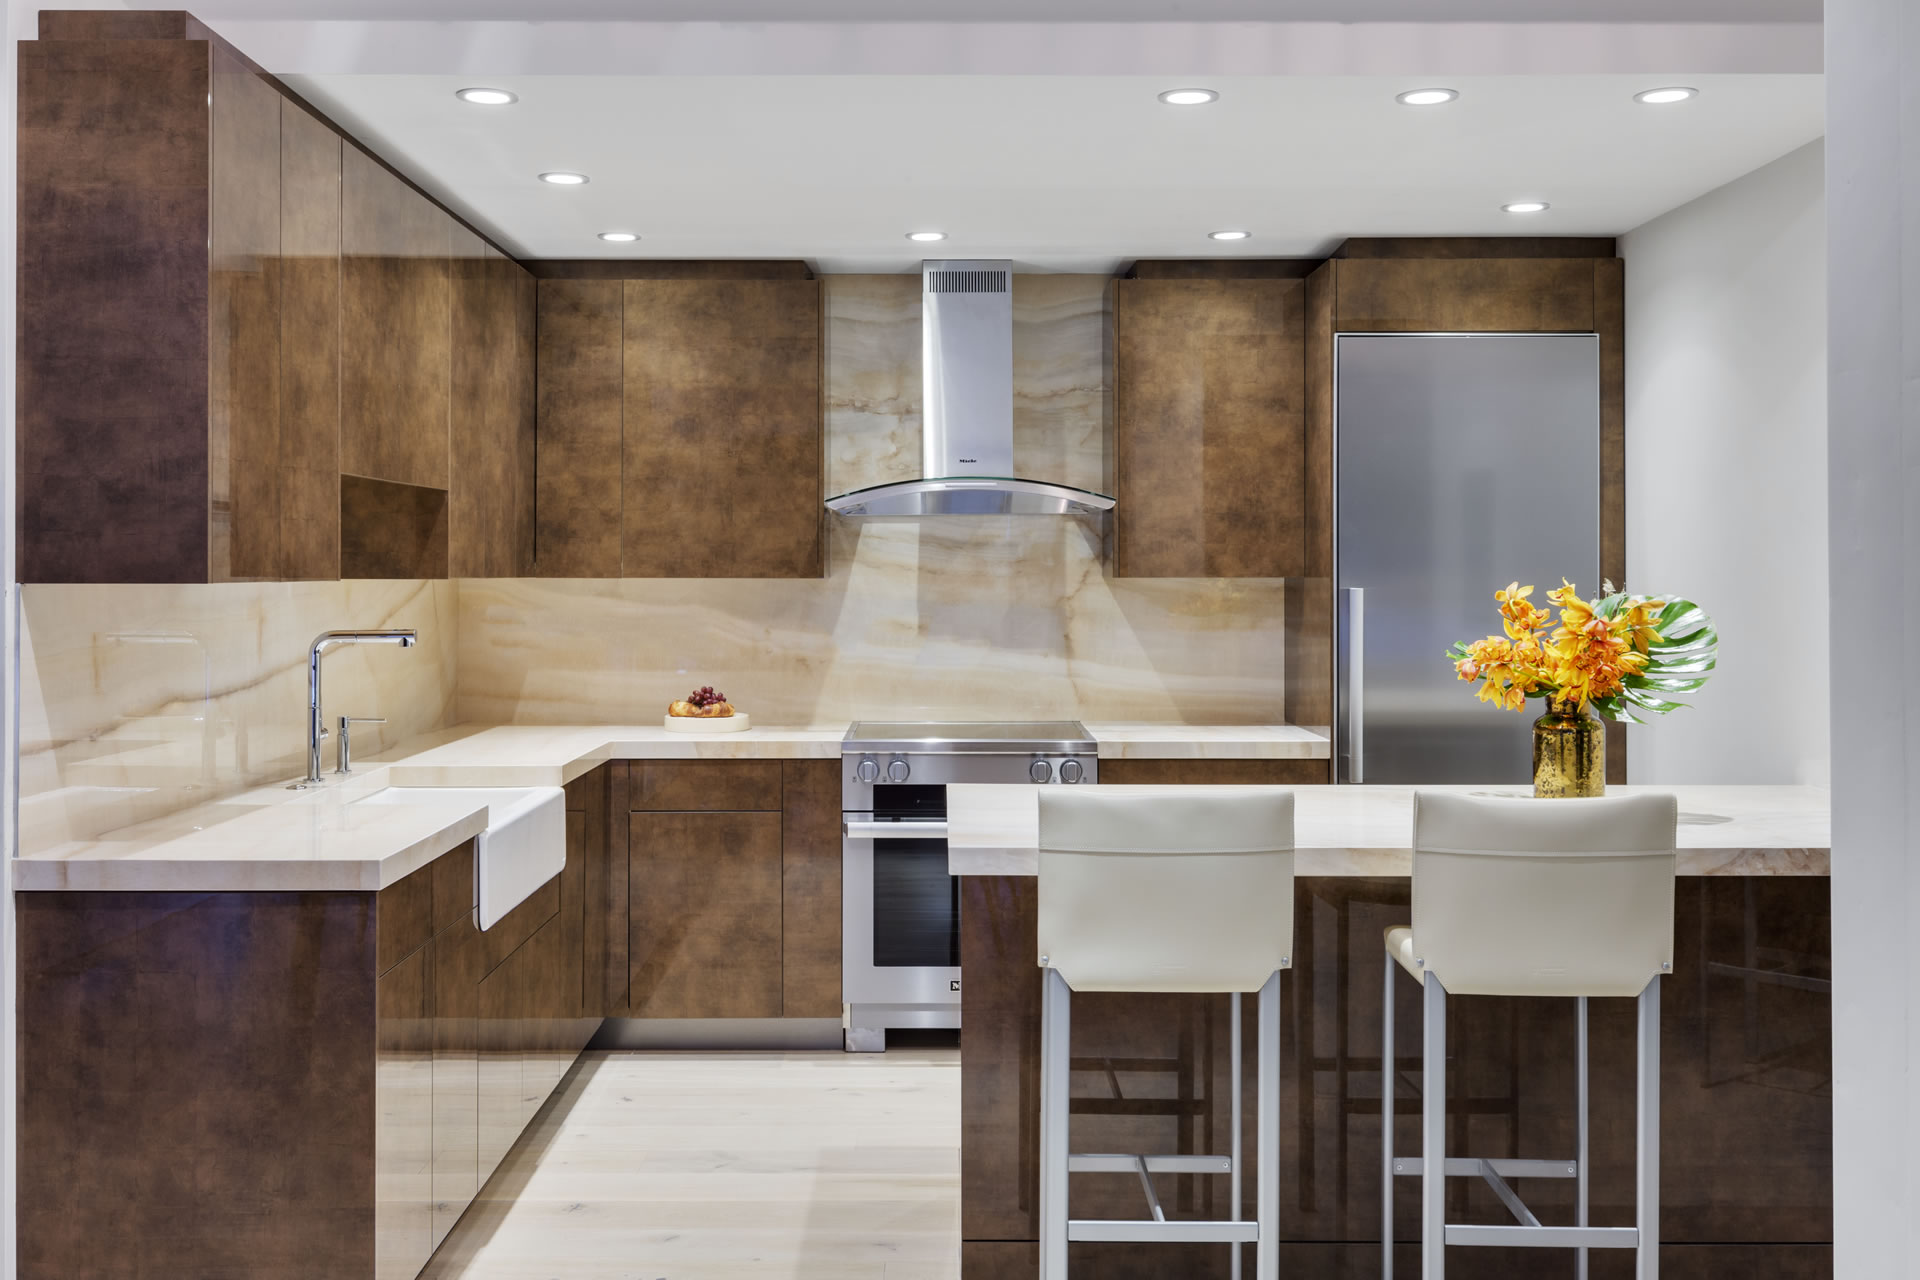 newton kitchens & design | exceptional cabinetry | needham, ma